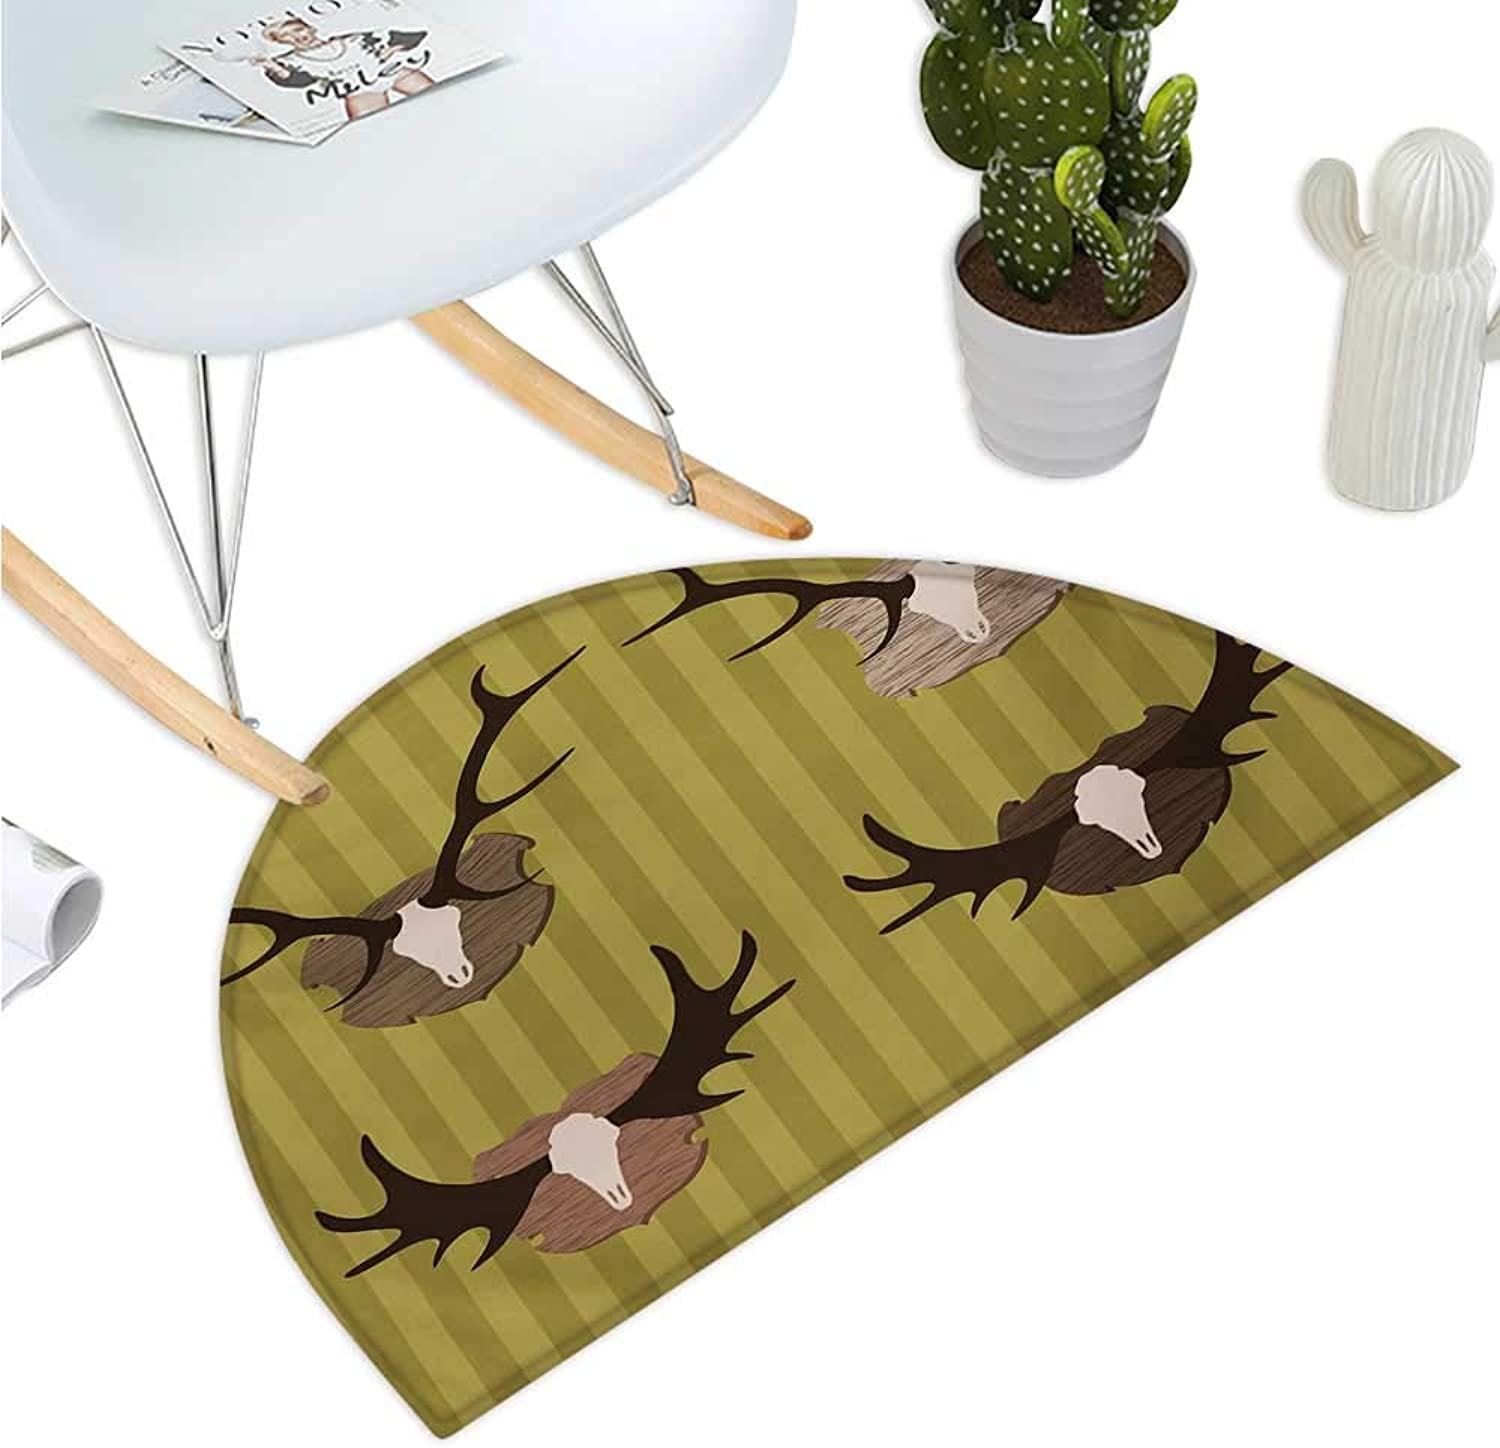 Hunting Semicircular Cushion Deer and Moose Horns Trophy on Striped Background Mountain Cottage Print Entry Door Mat H 39.3  xD 59  Khaki Multicolor